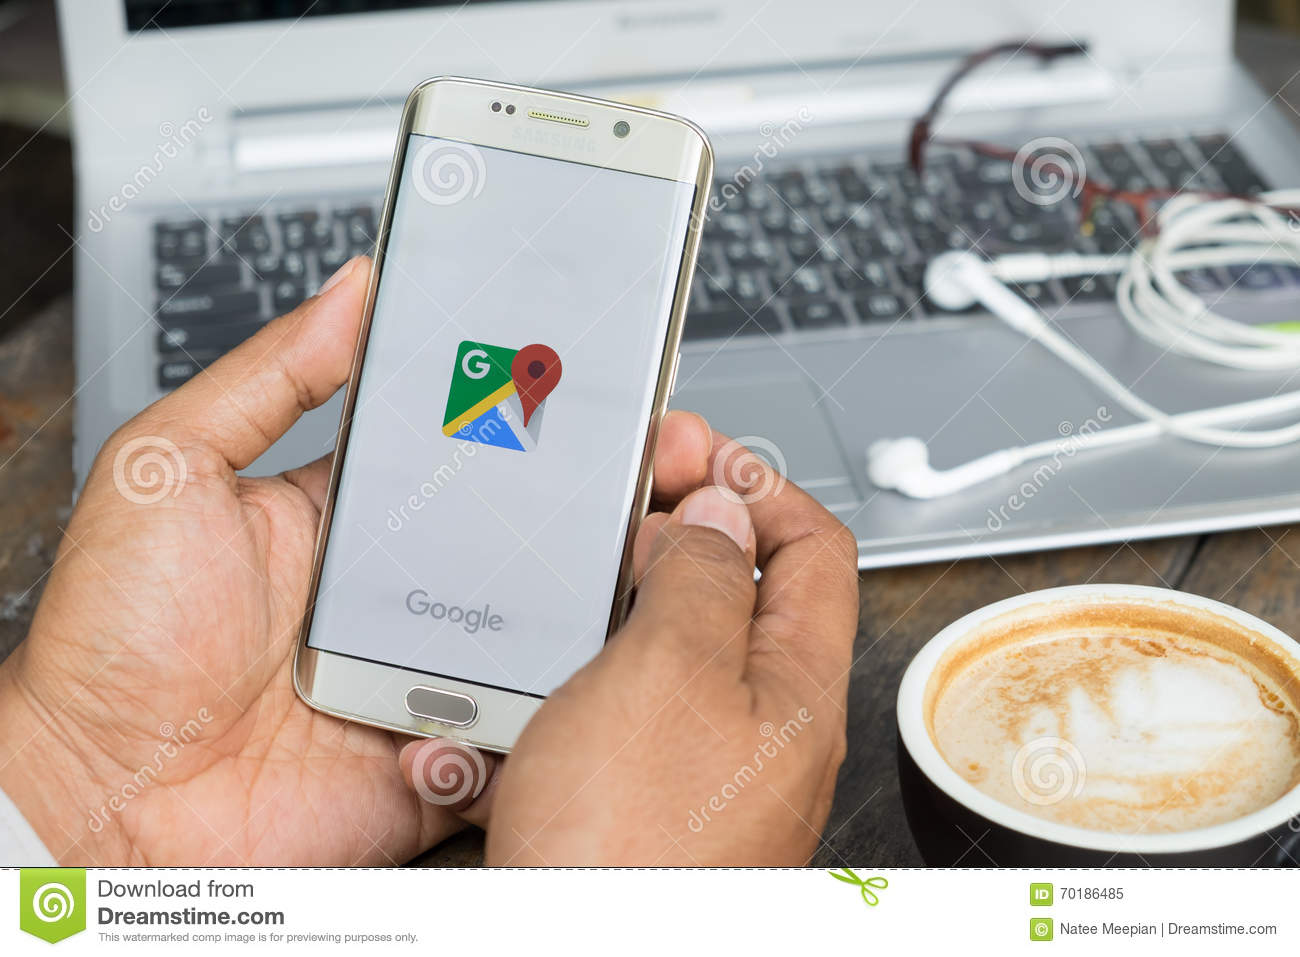 CHIANG MAI,THAILAND - MAR 16: Google Maps For Mobile